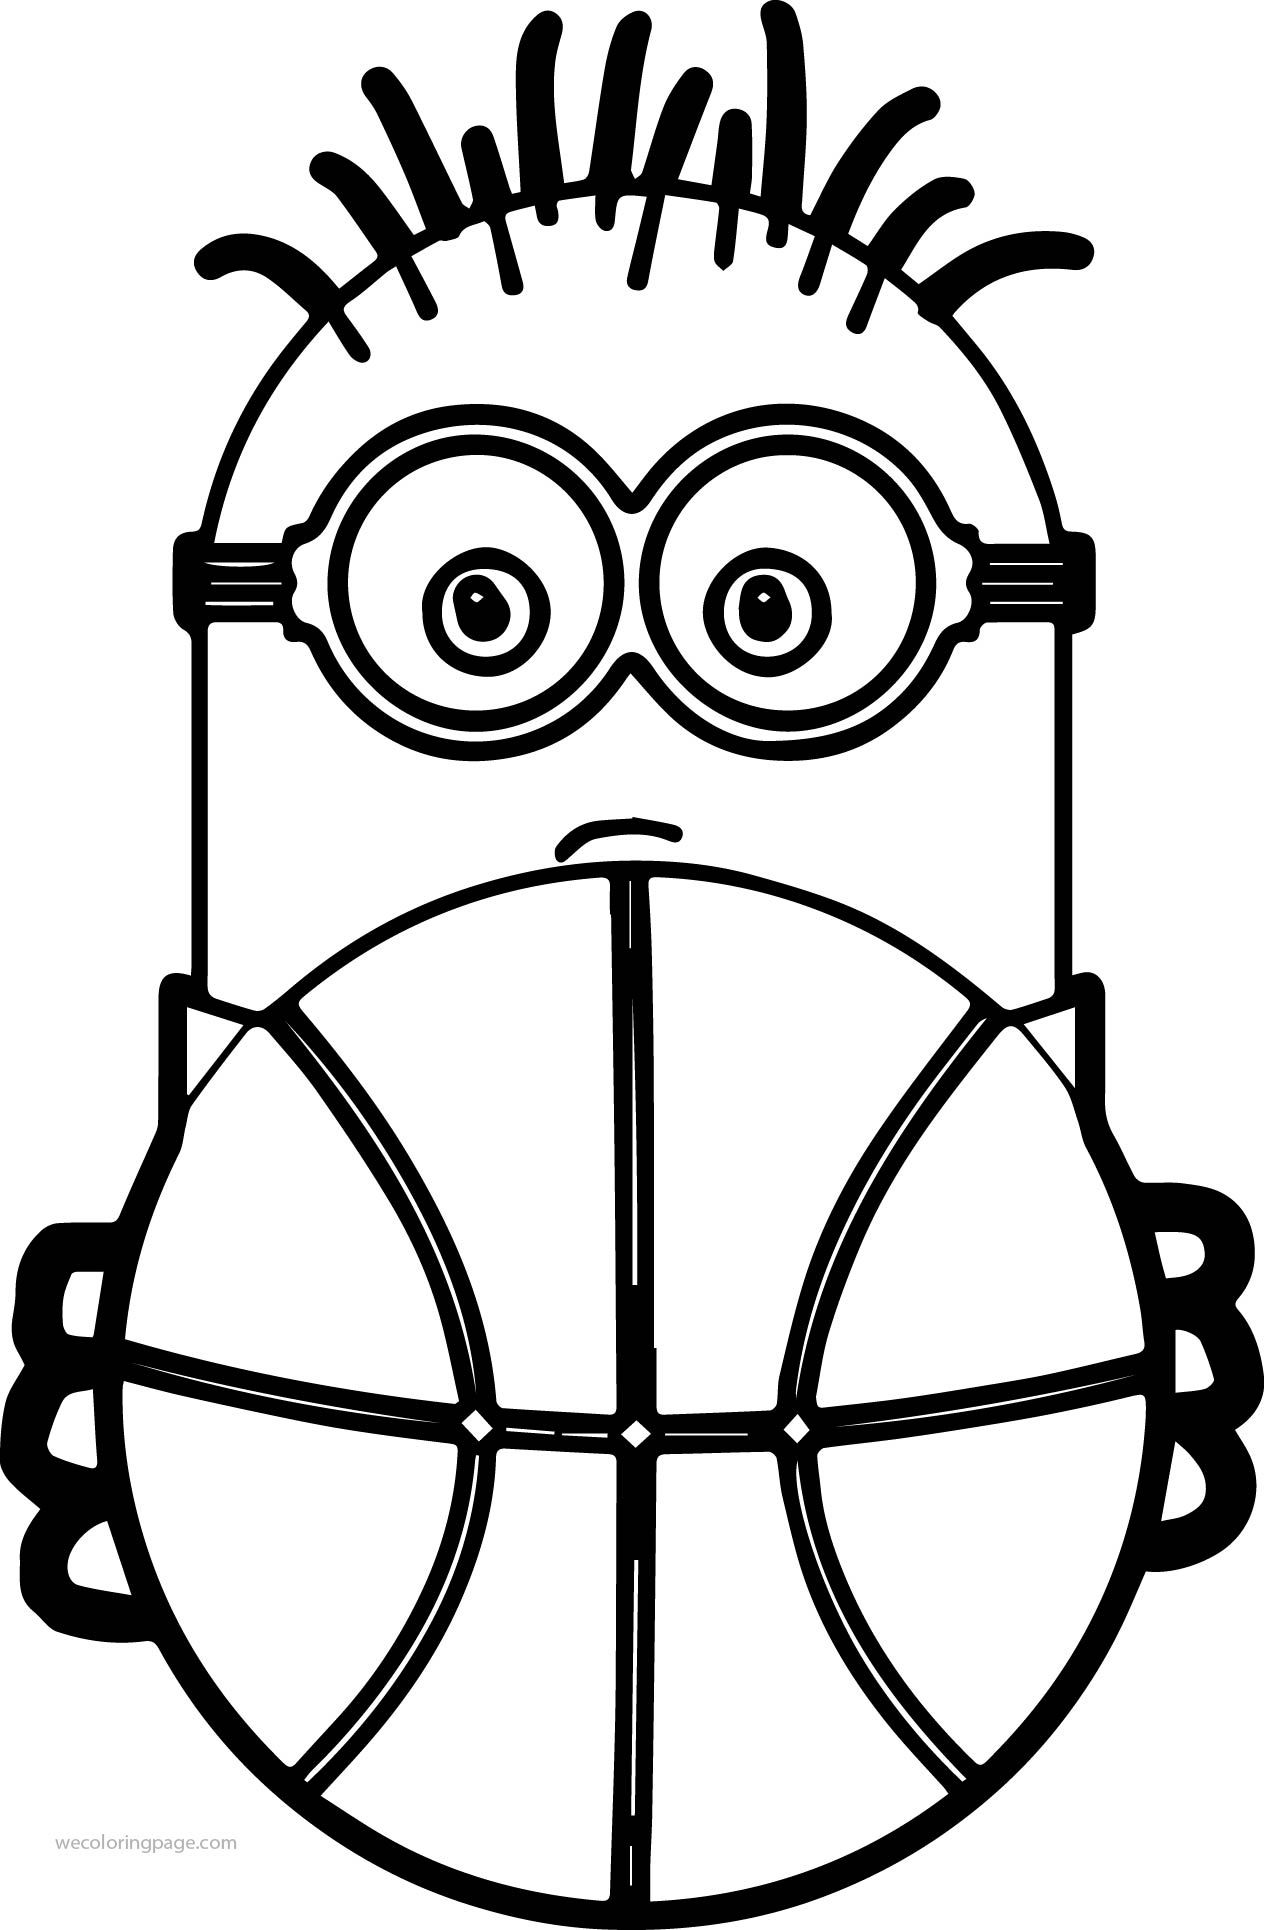 Wecoloringpage Image By Wecoloringpage Coloring Pages Sports